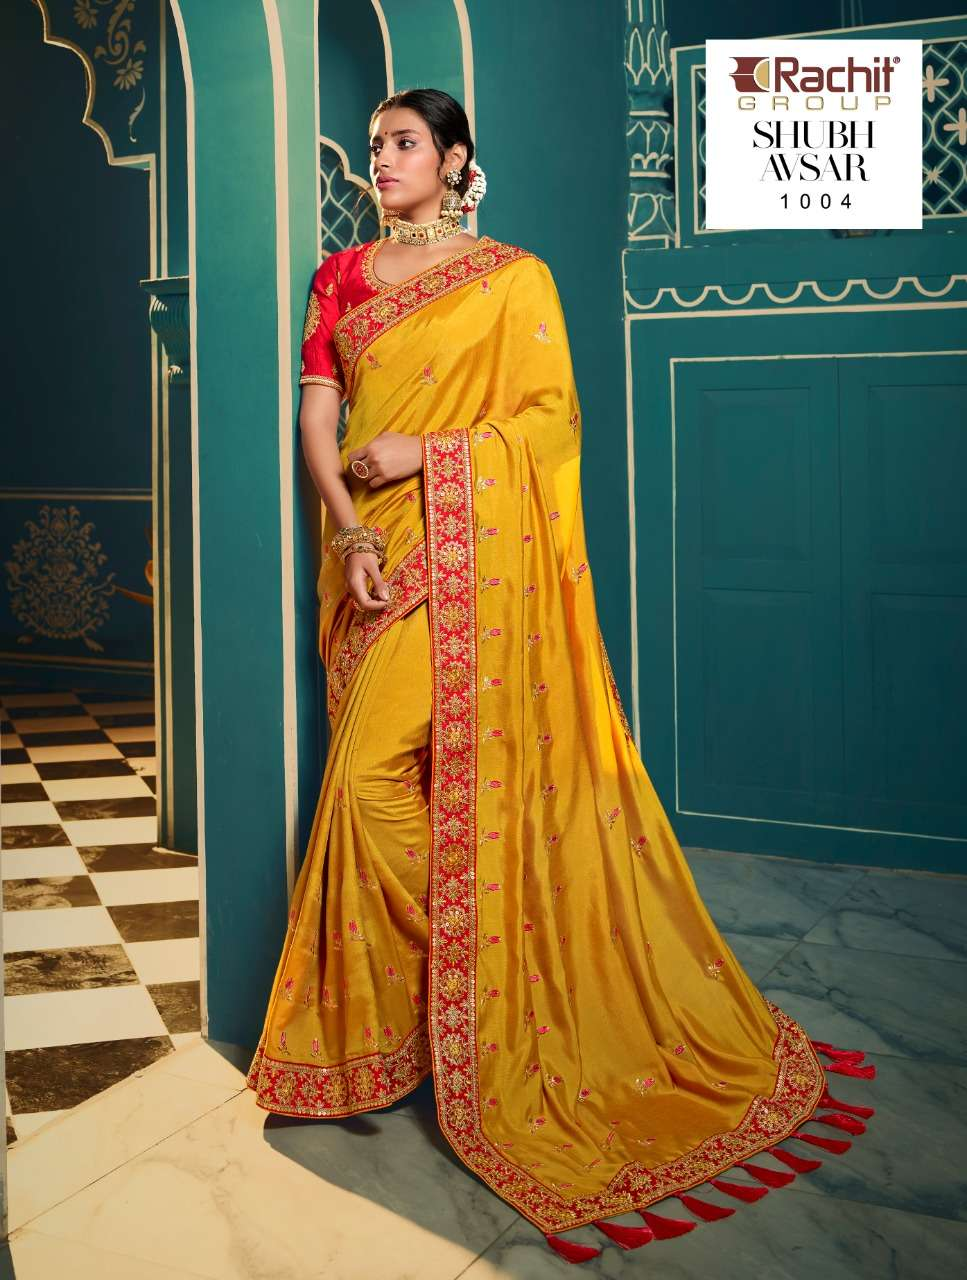 RACHIT AVSAR FANCY PARTY WEAR SAREE COLLECTION